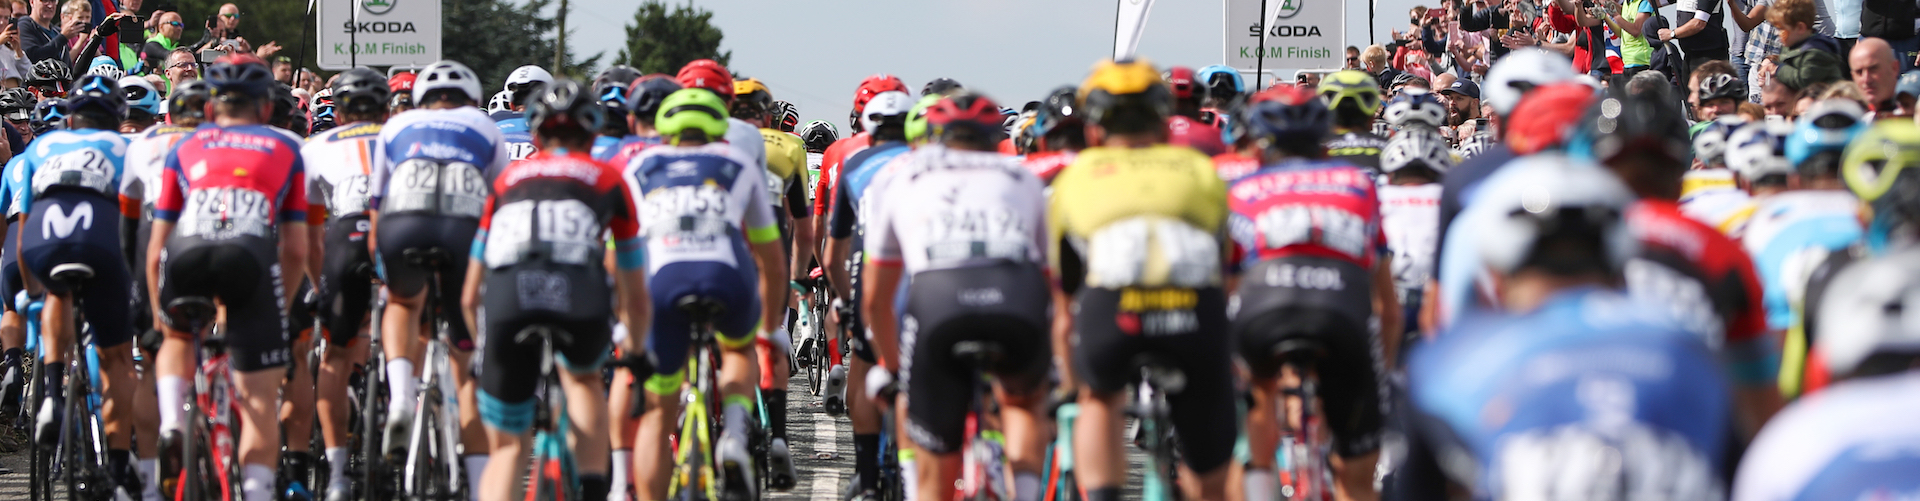 Cyclists from behind, mid race during the Tour of Britain.